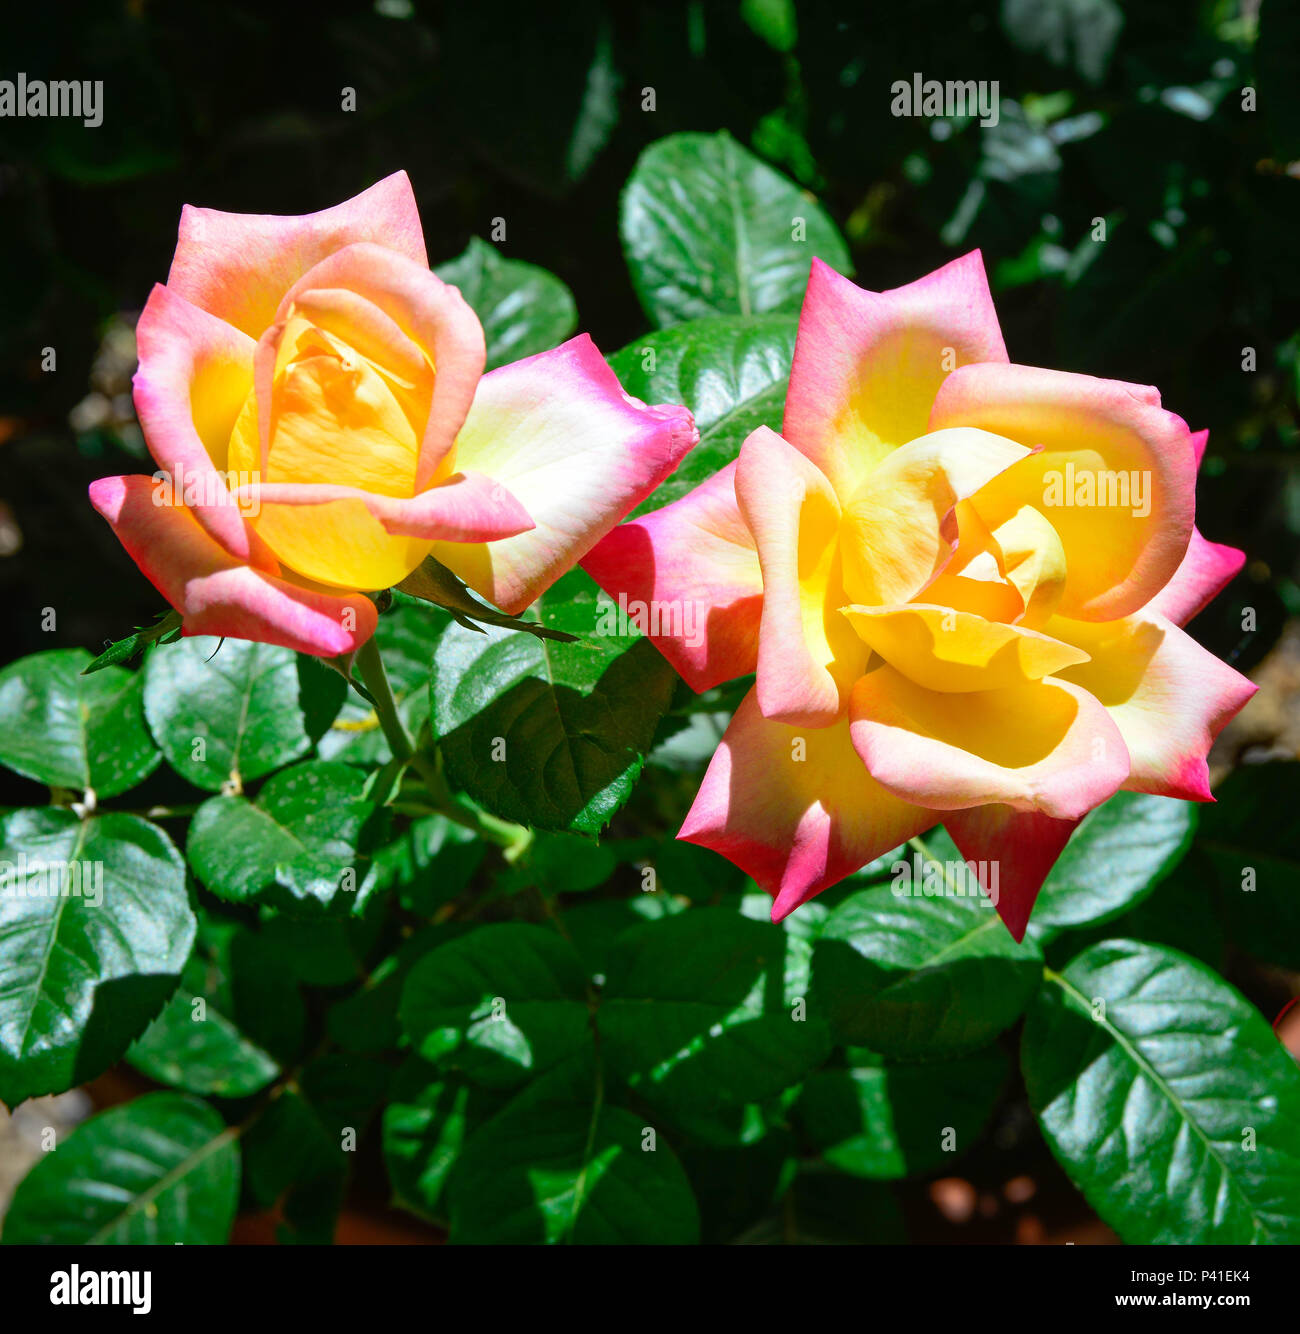 Several golden yellow with ruby blushed tip roses, known as 'Dream Come True' Grandiflora roses blooming in Spring garden - Stock Image